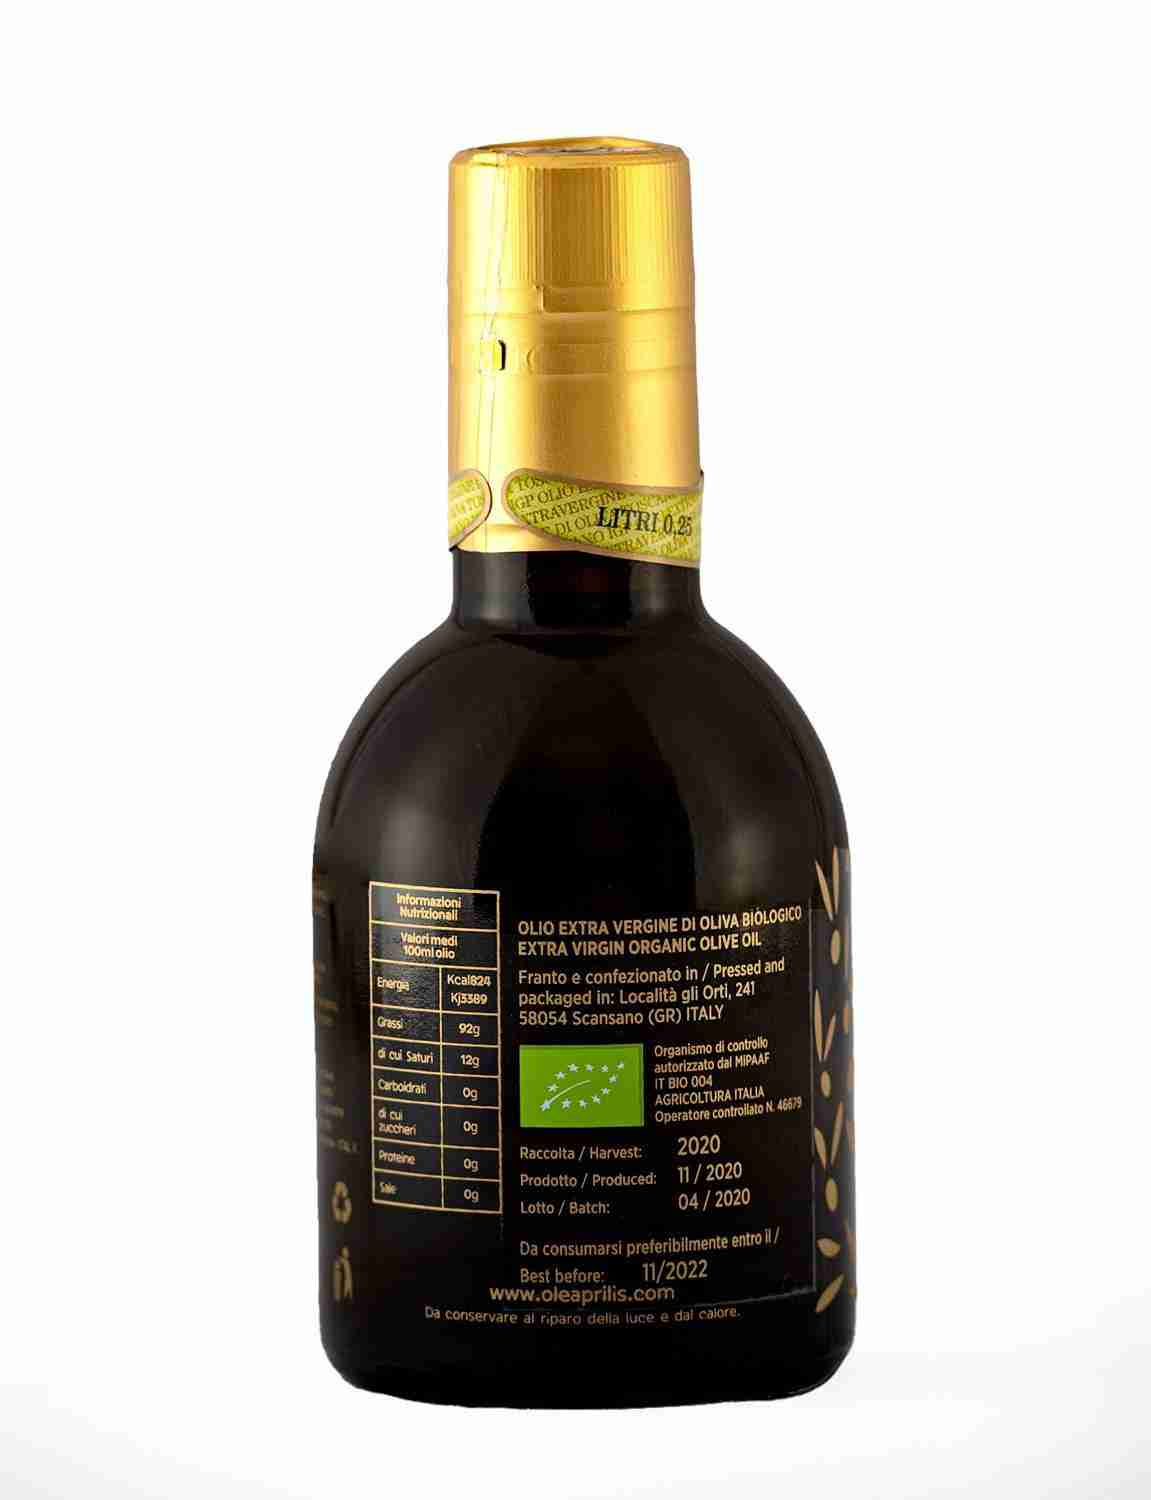 IGP Toscano Organic EVOO Glass bottle with safety closures